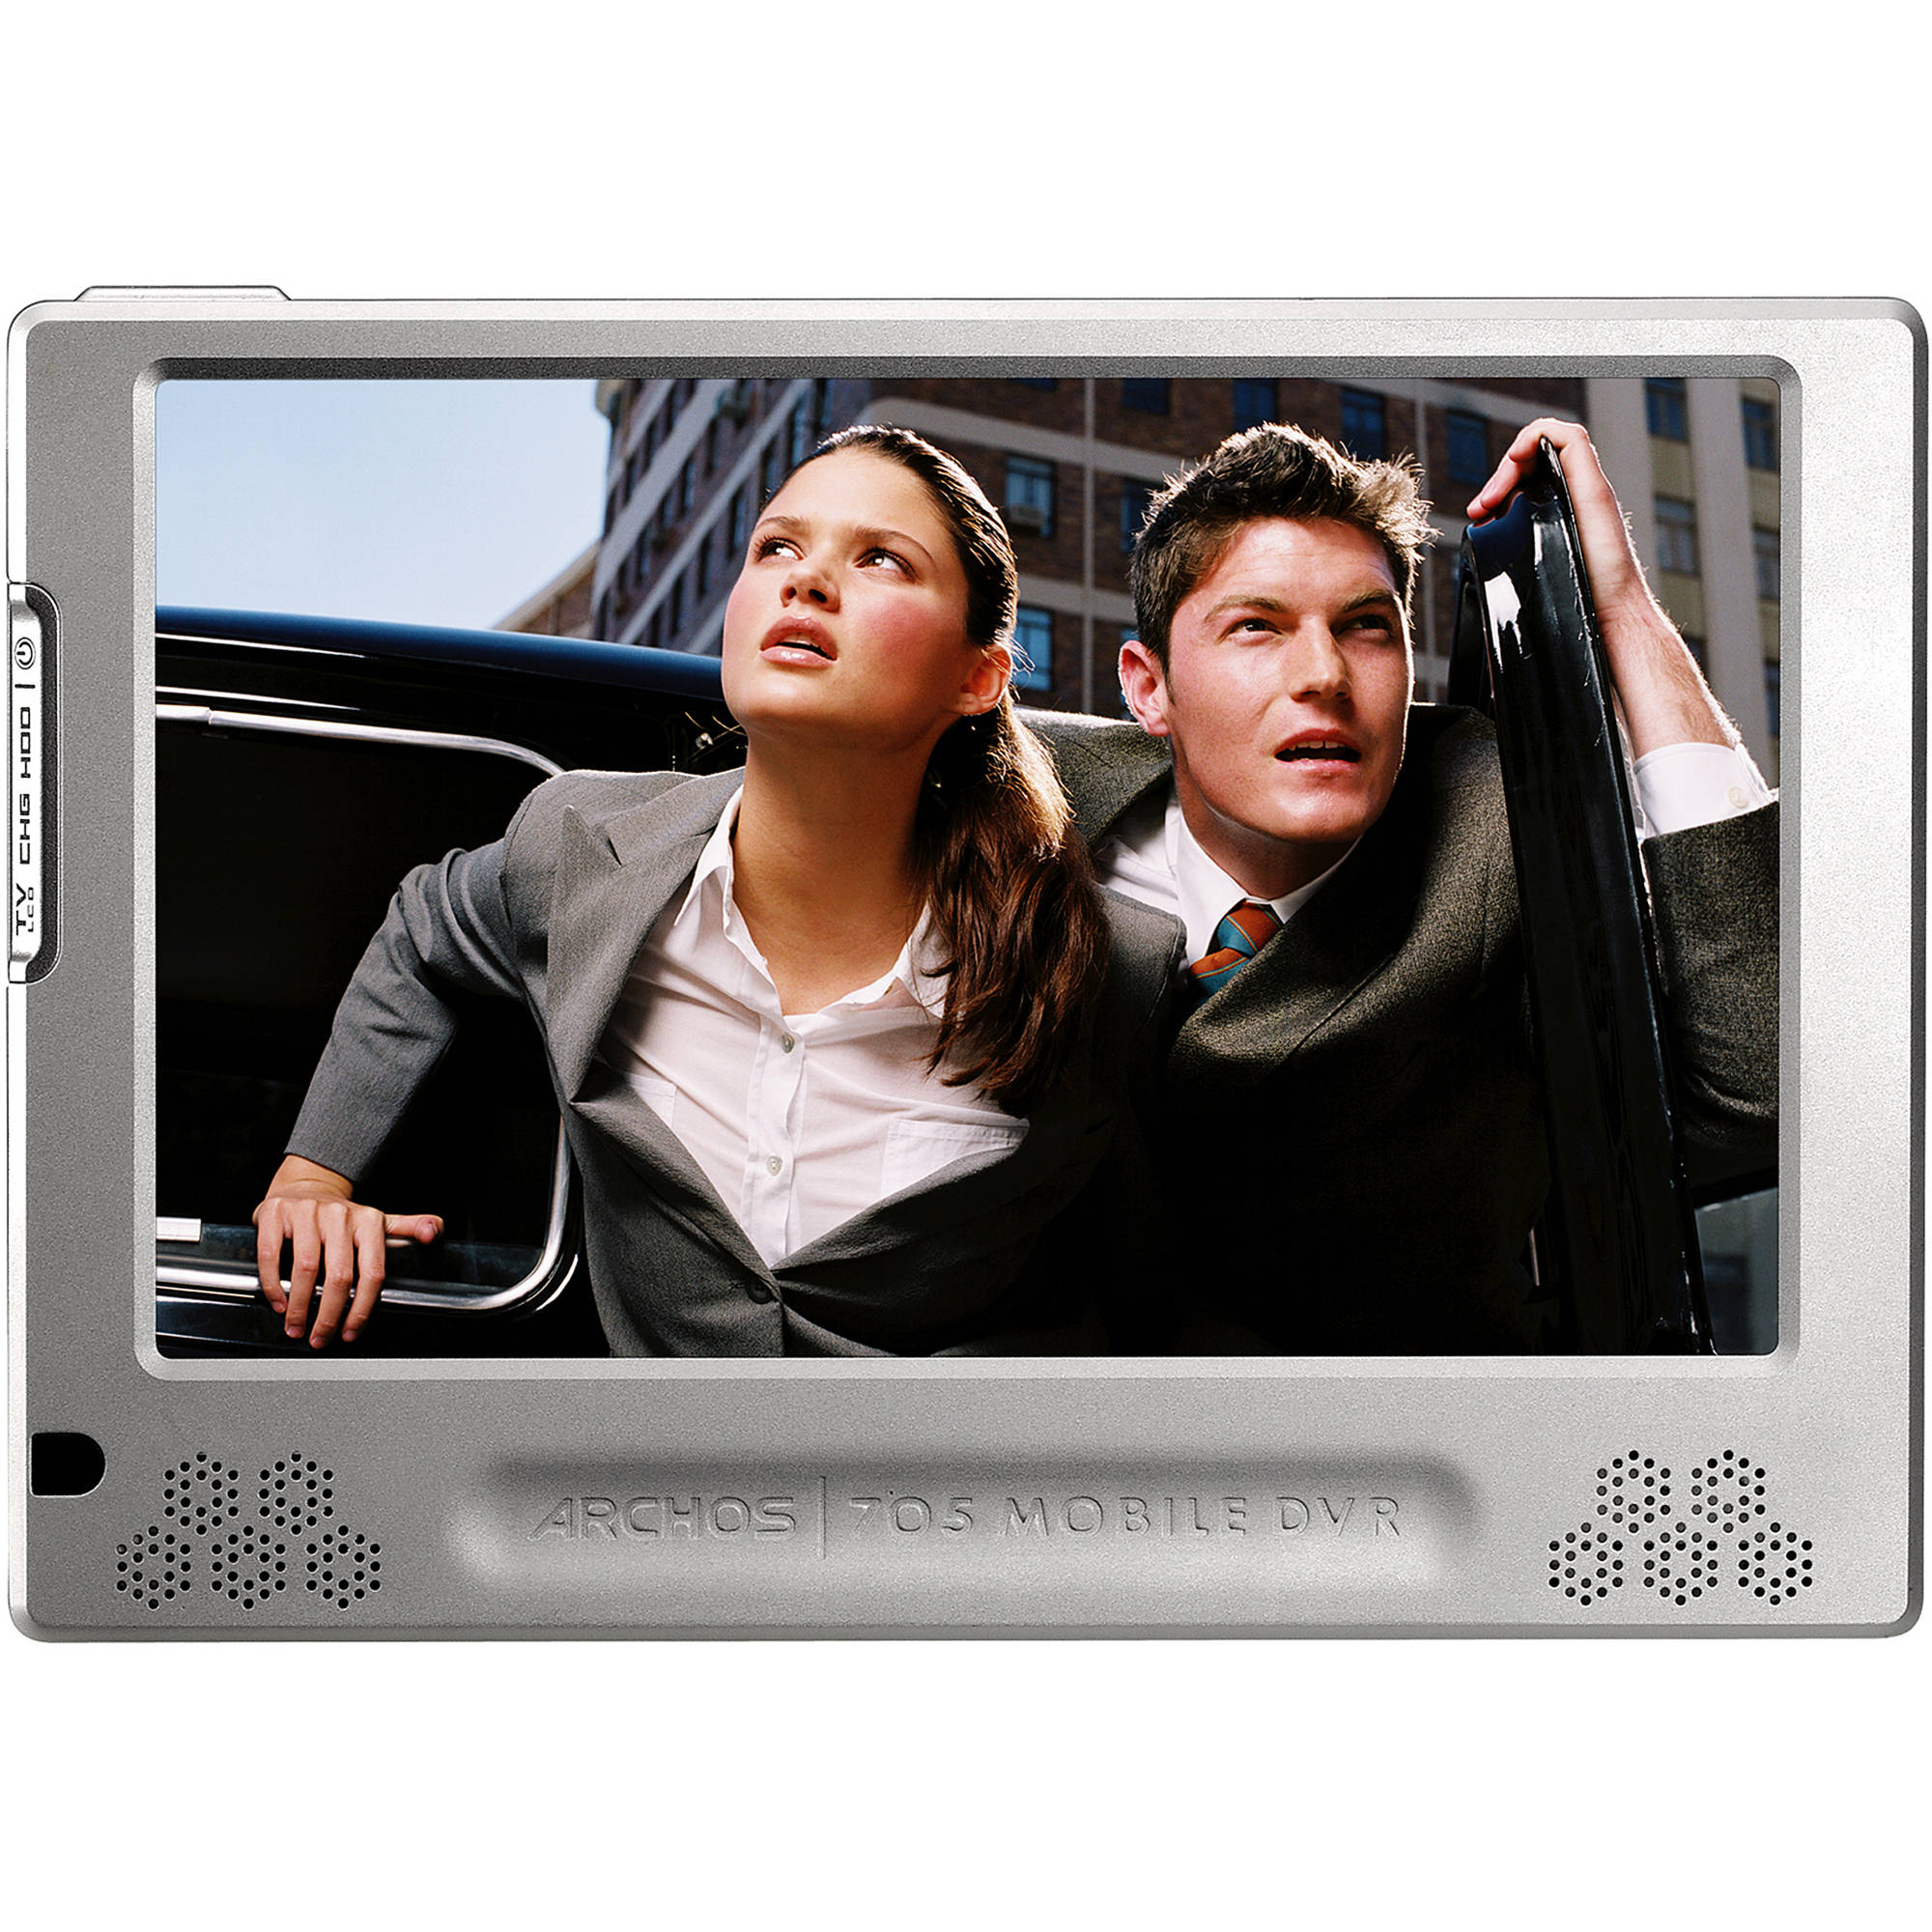 archos archos 705 portable wifi media player and recorder 501016 rh bhphotovideo com User Manual PDF User Manual Template